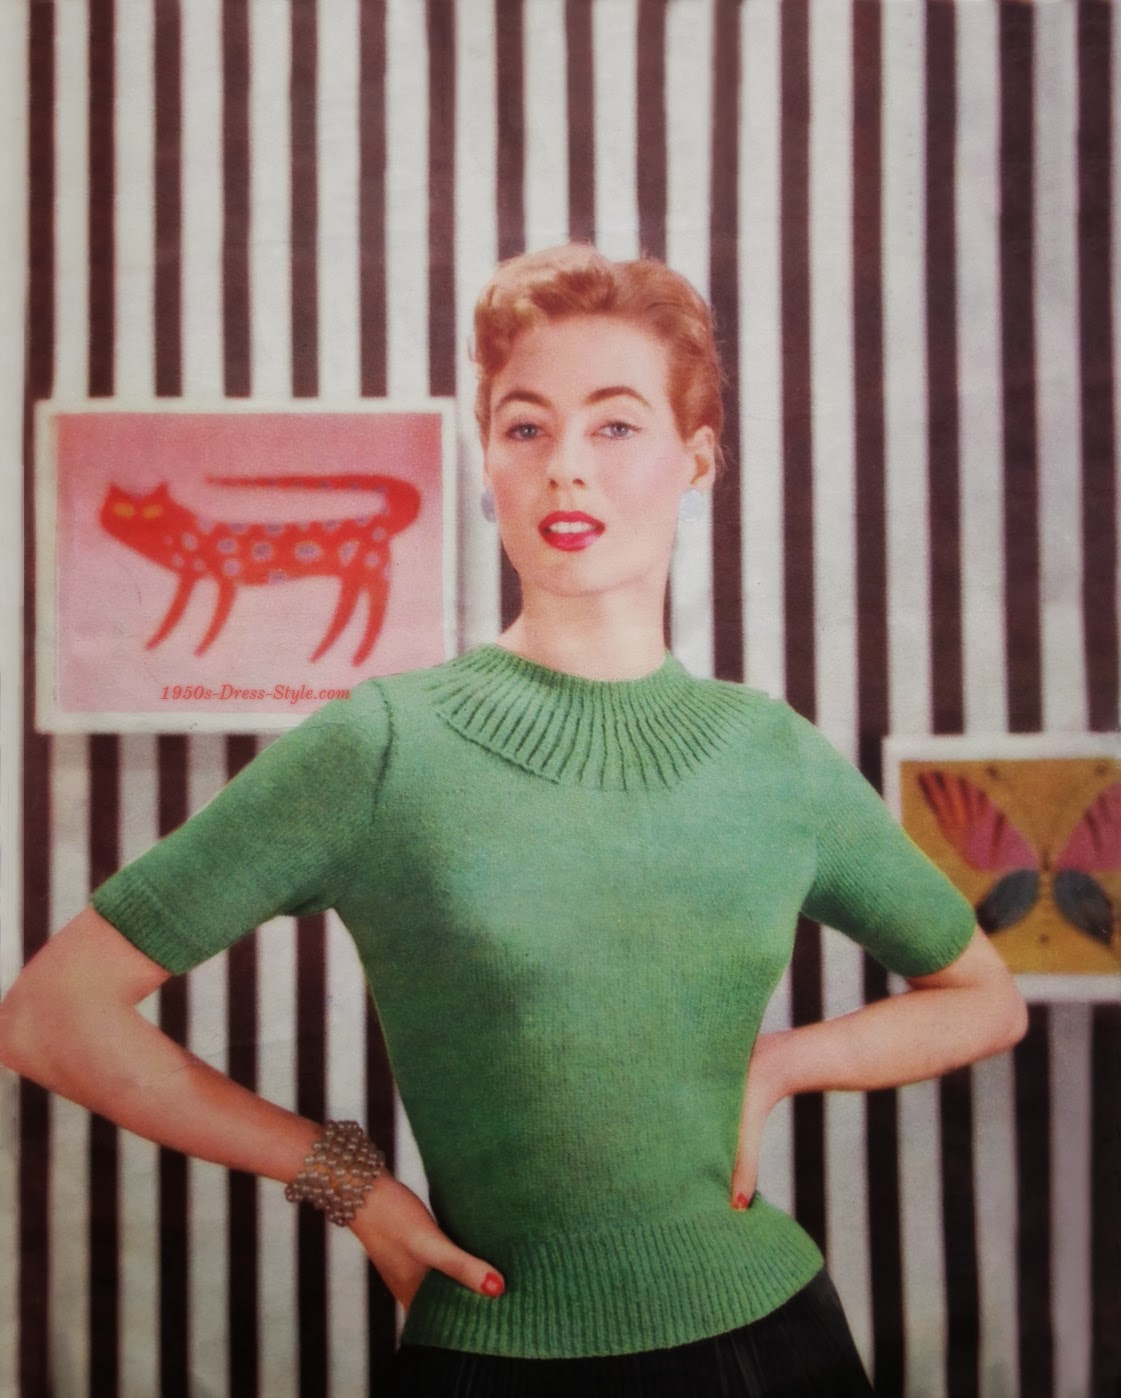 1950s Hairstyles ~ Clothing 1950s Dress Style